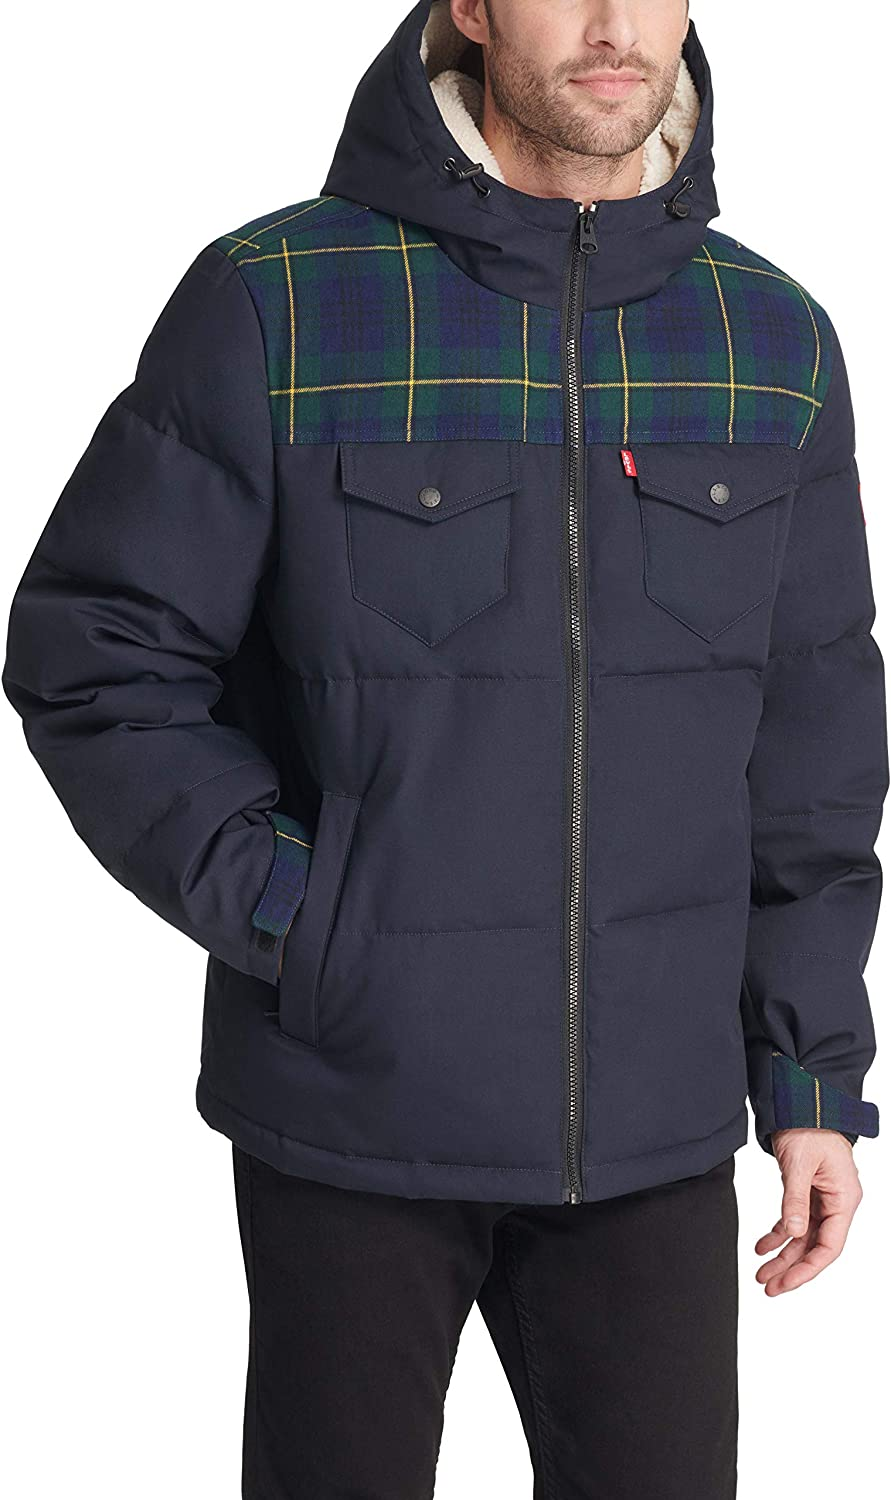 Levi's All items in the store Men's Heavyweight Mid-Length Limited time trial price Puffer Jacke Military Hooded